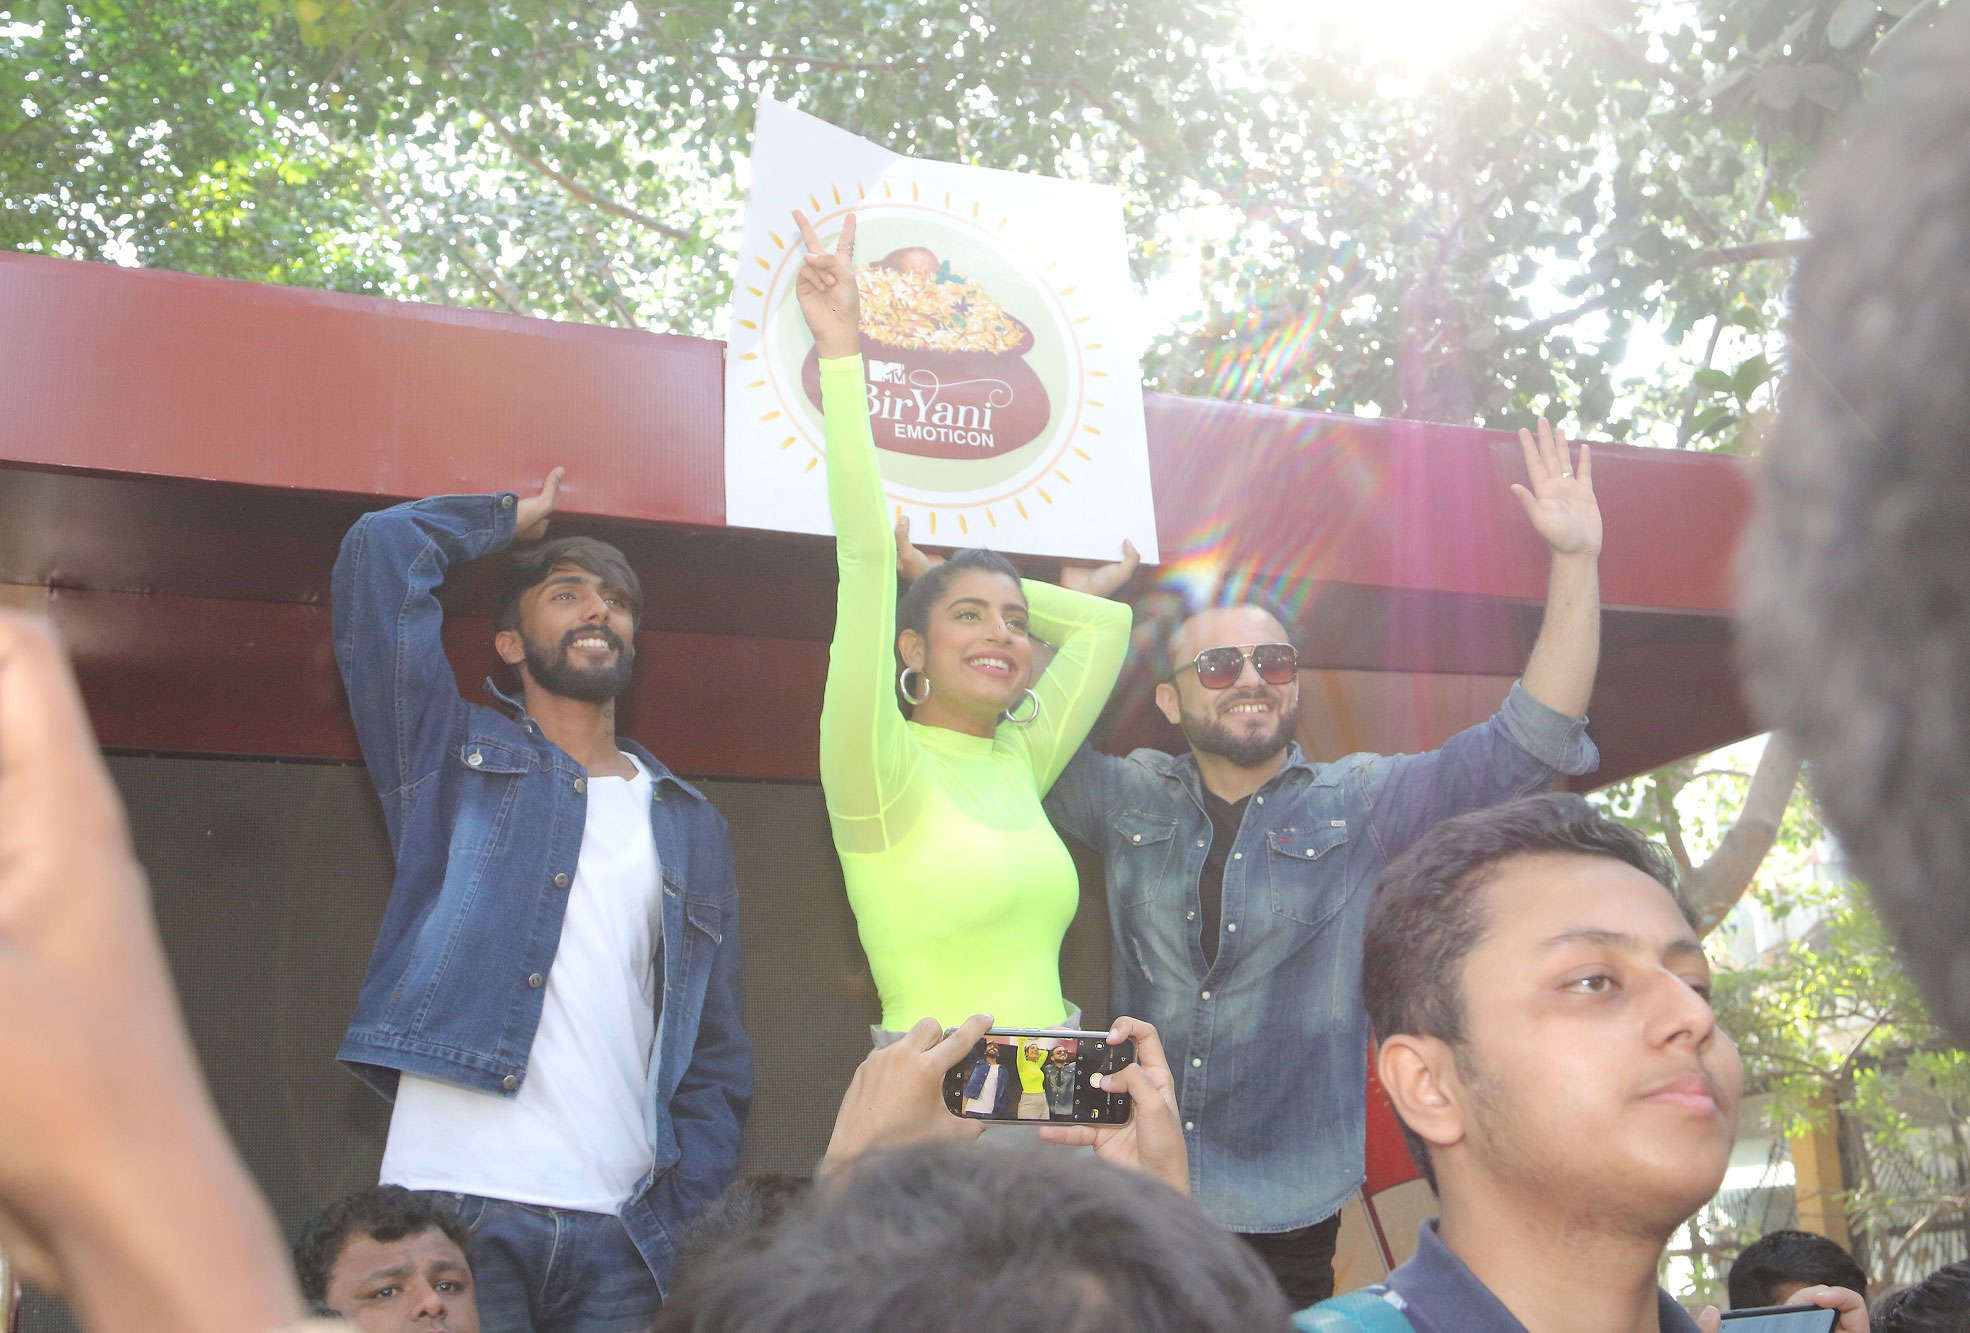 VJ Gaelyn with MTV Hustle Contestants at the MTV Biryani March in Delhi